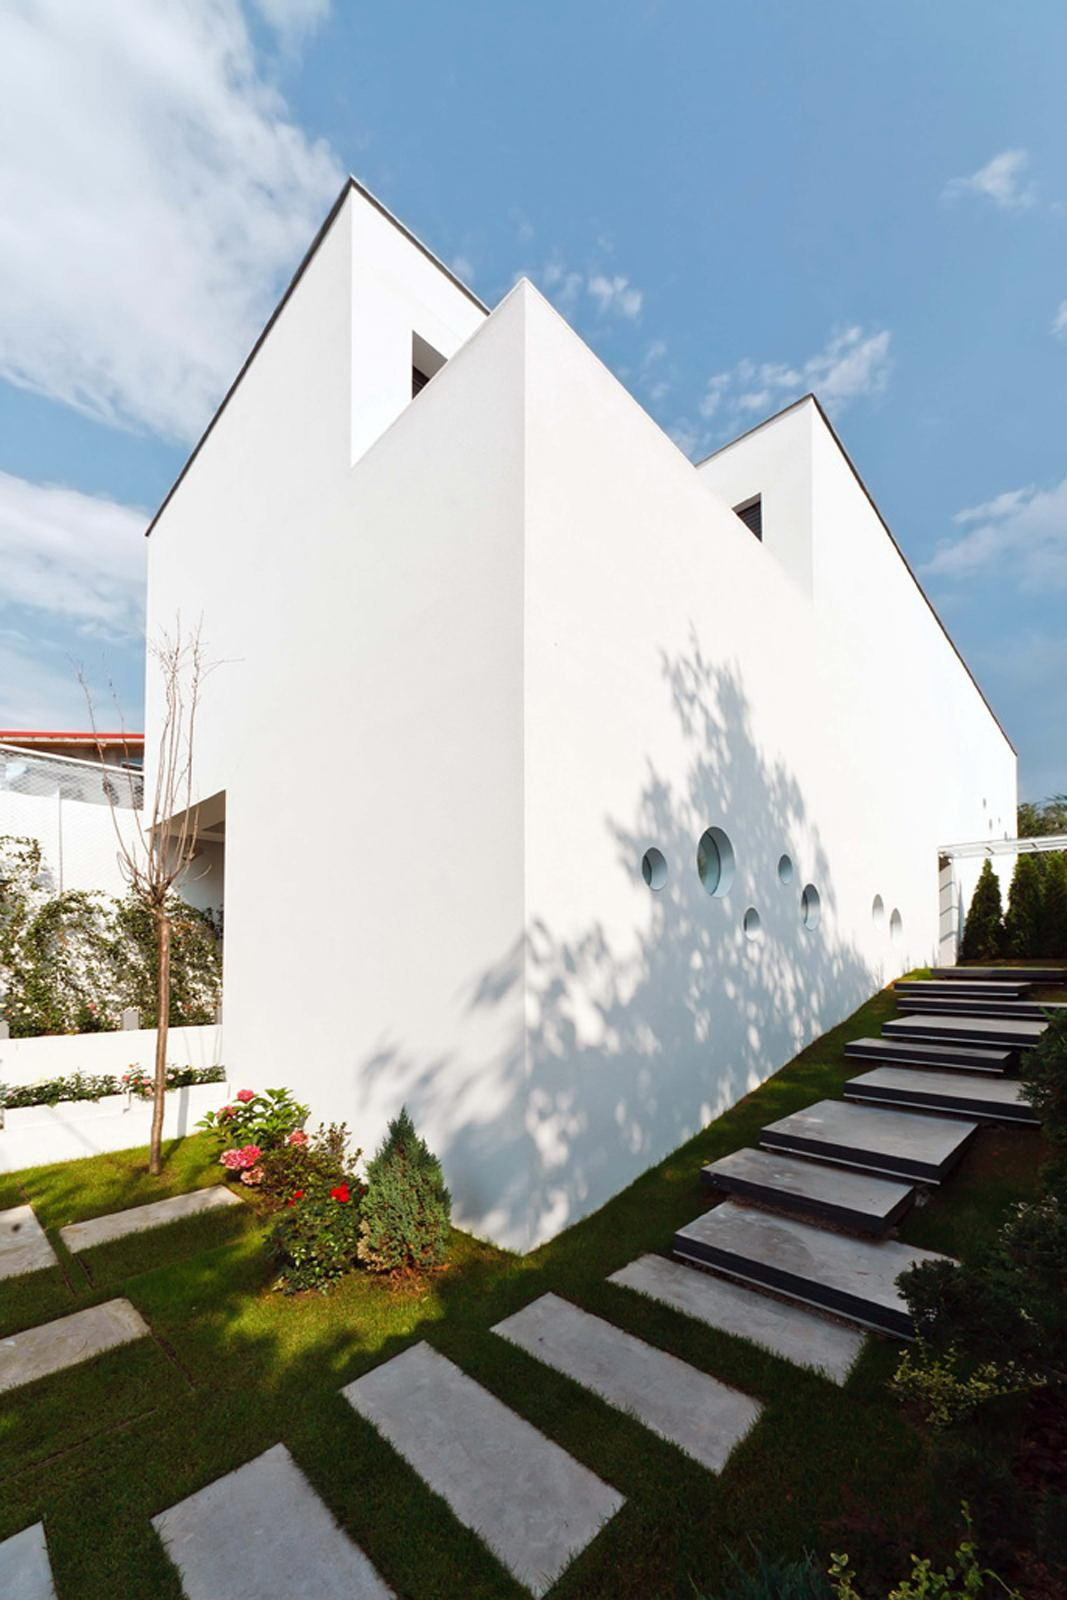 Vultureni House by TECON Architects